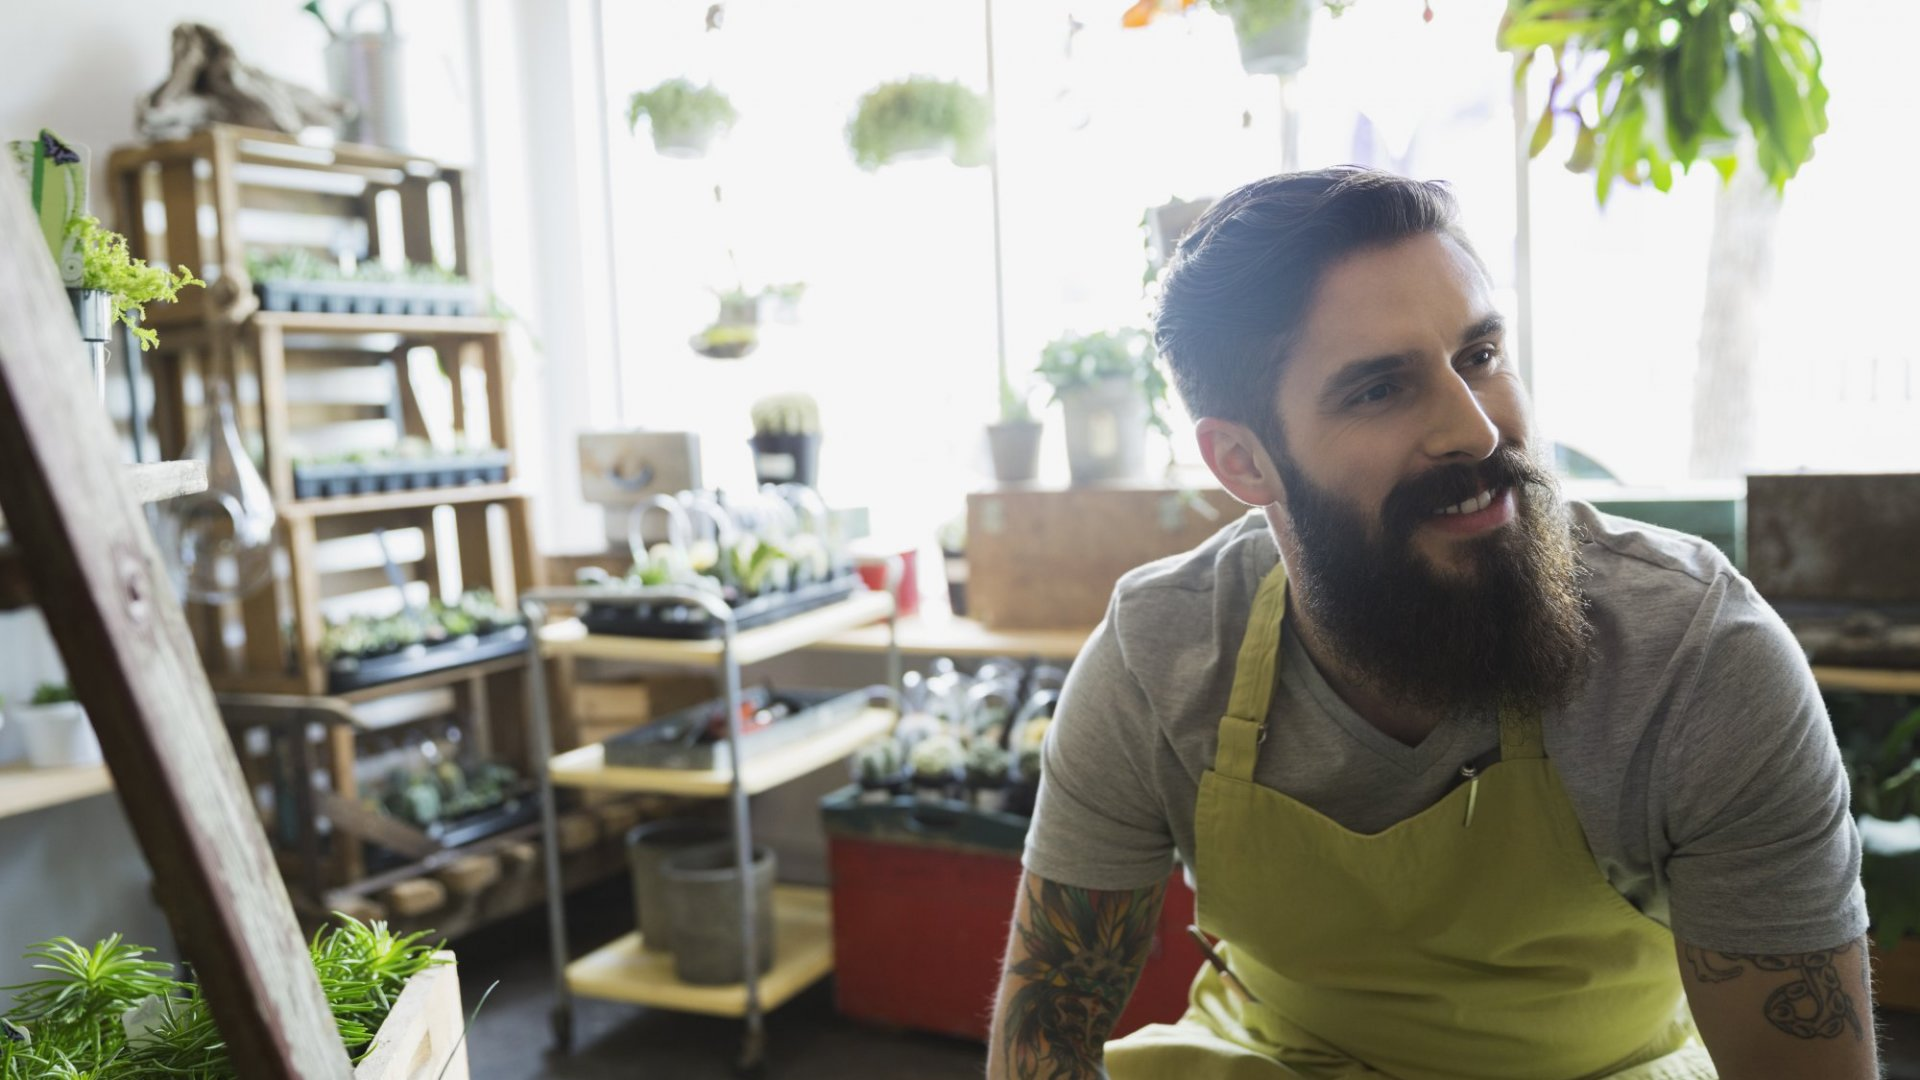 Is all technology hip for a hipster business?